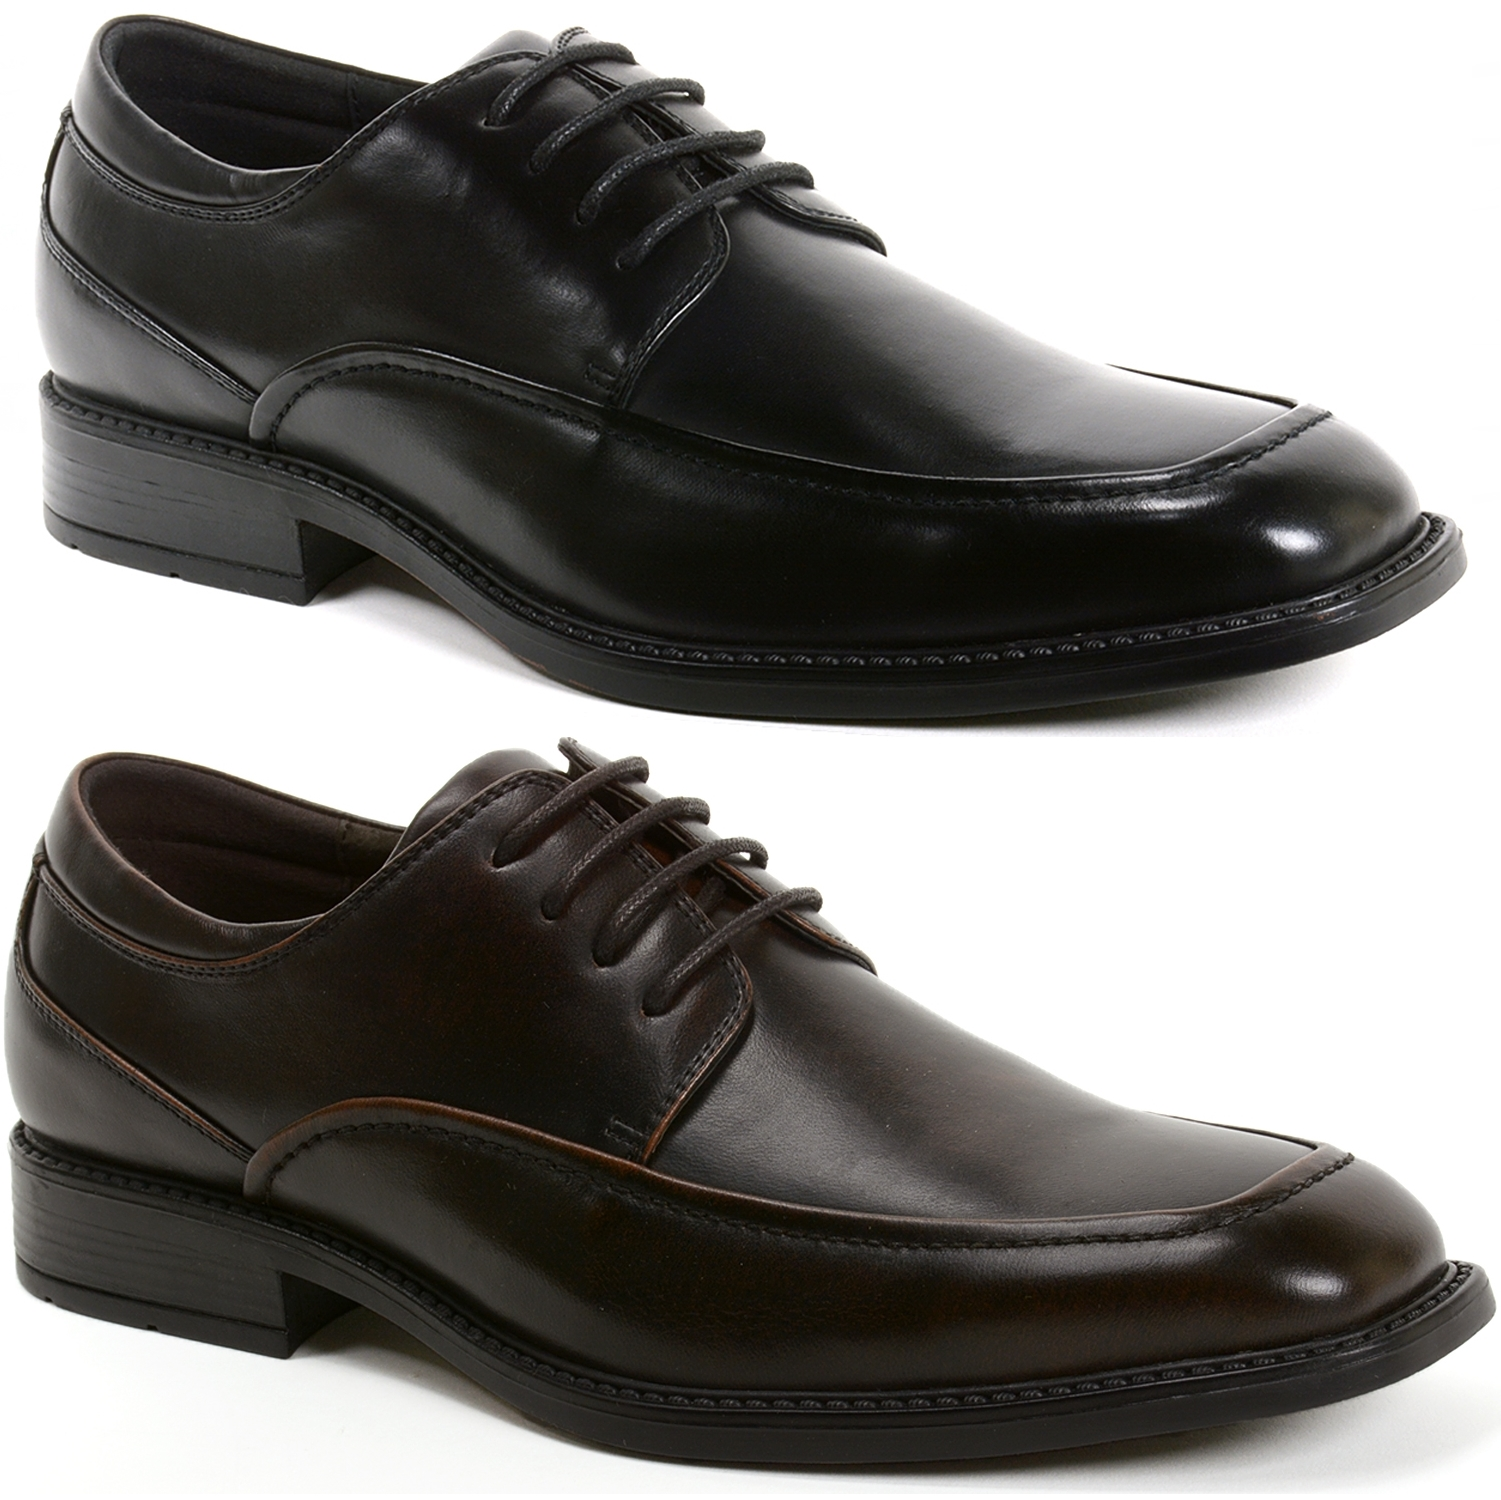 When you're shopping for men's dress shoes, it can often seem like style is a much easier goal to achieve than comfort. With all of Sears' available options, like men's oxfords and loafers, finding the perfect pair of shoes that both looks great your suit or jacket and feels great on your feet will be much easier.